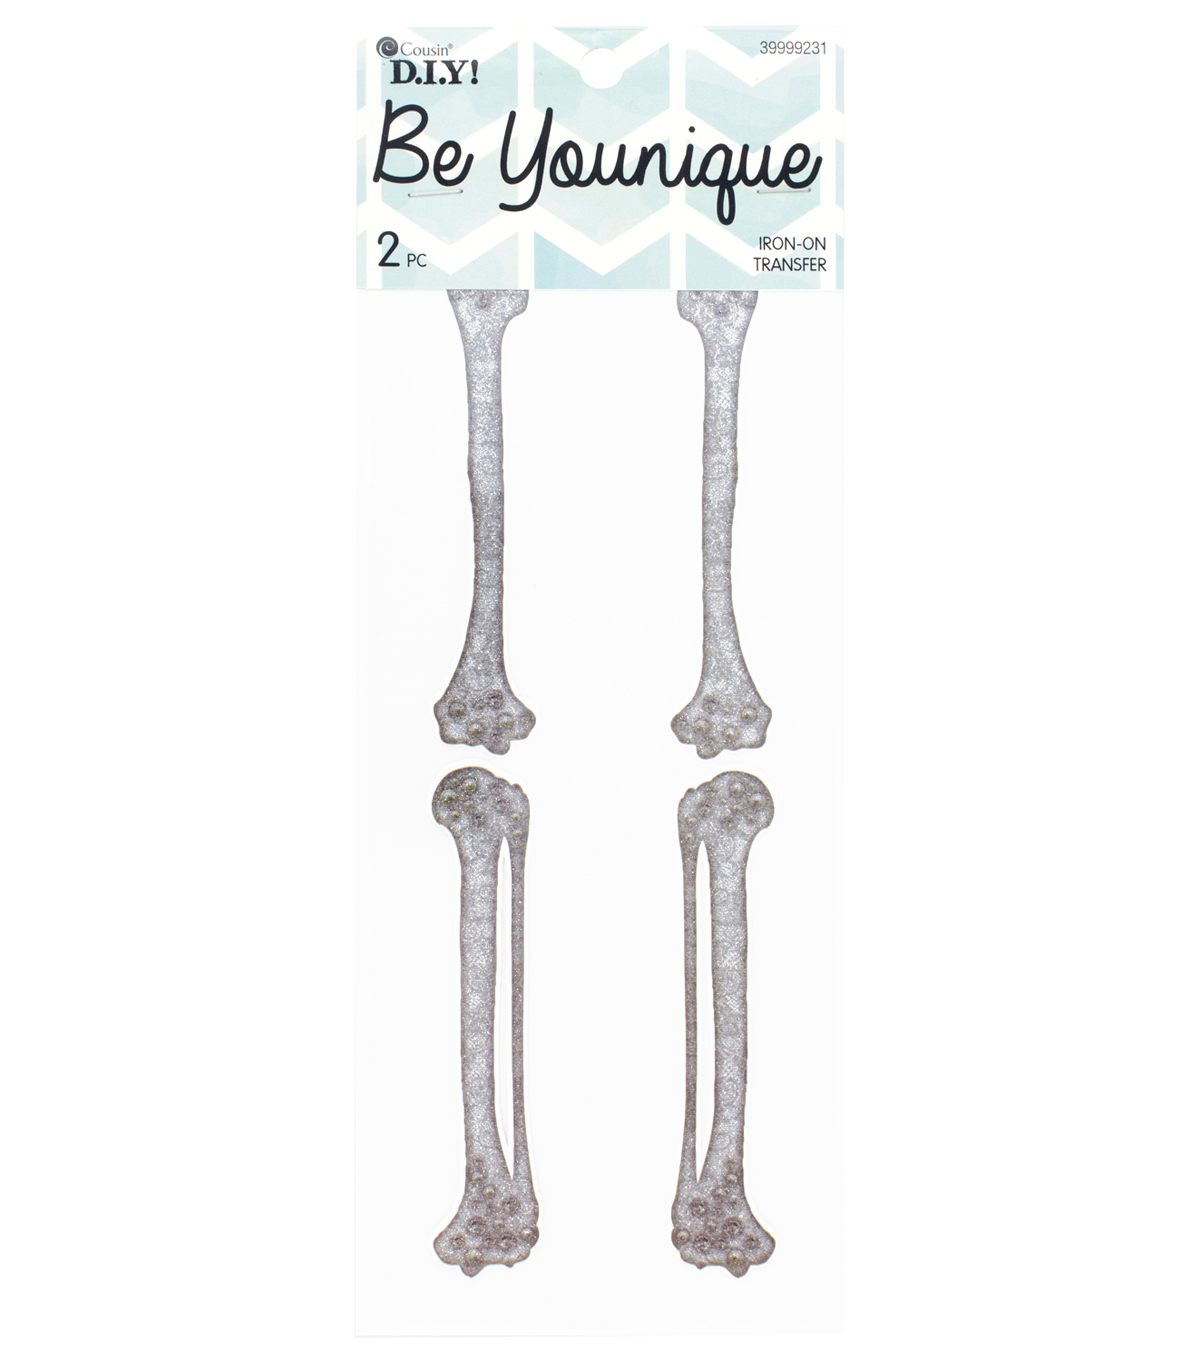 Cousin® DIY Be Younique 2 Pack Sleeve Iron-On Transfers-Lace Bones